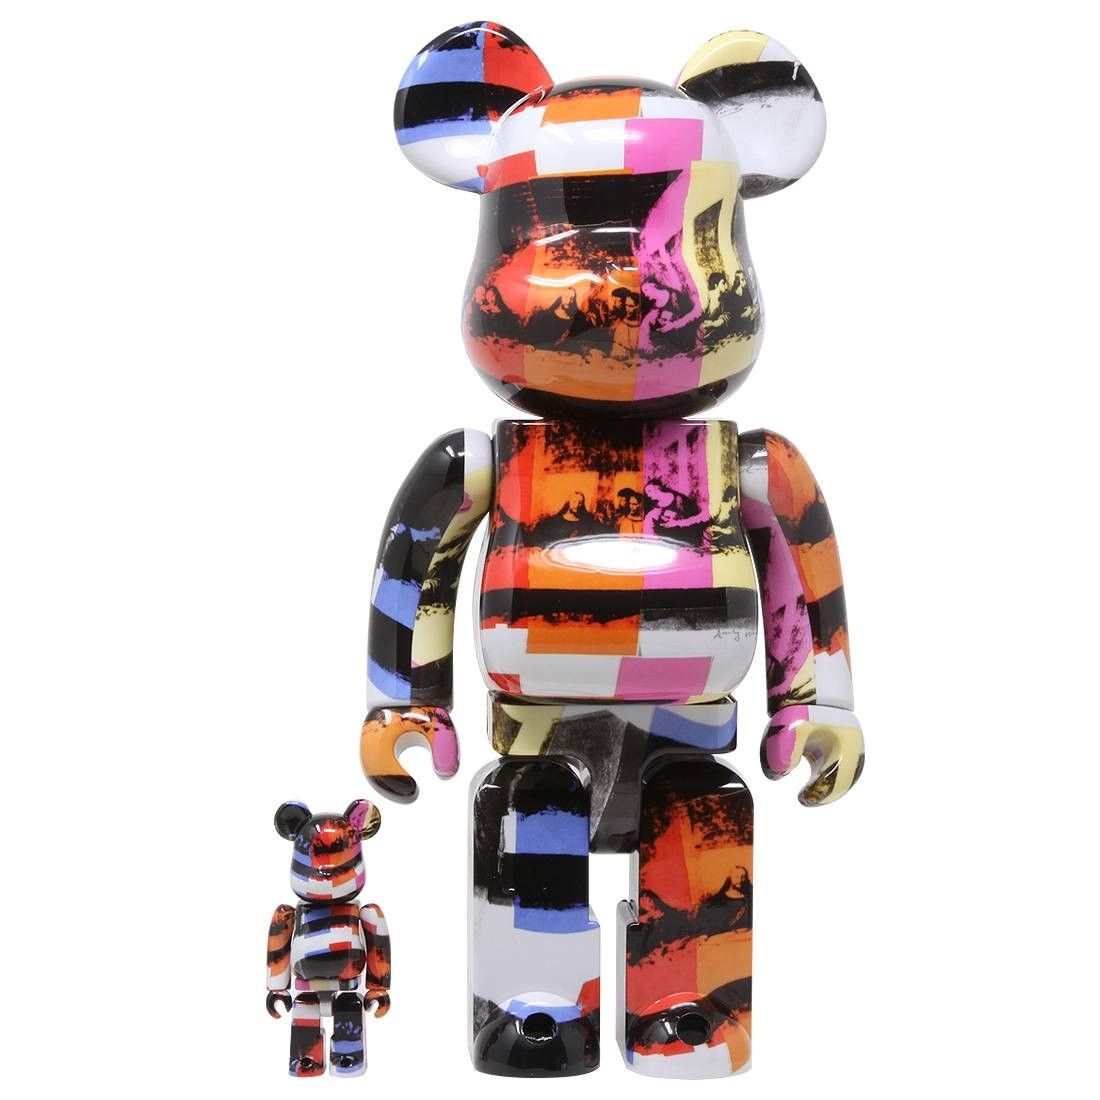 Medicom Andy Warhol The Last Supper 100% 400% Bearbrick Figure Set (multi)